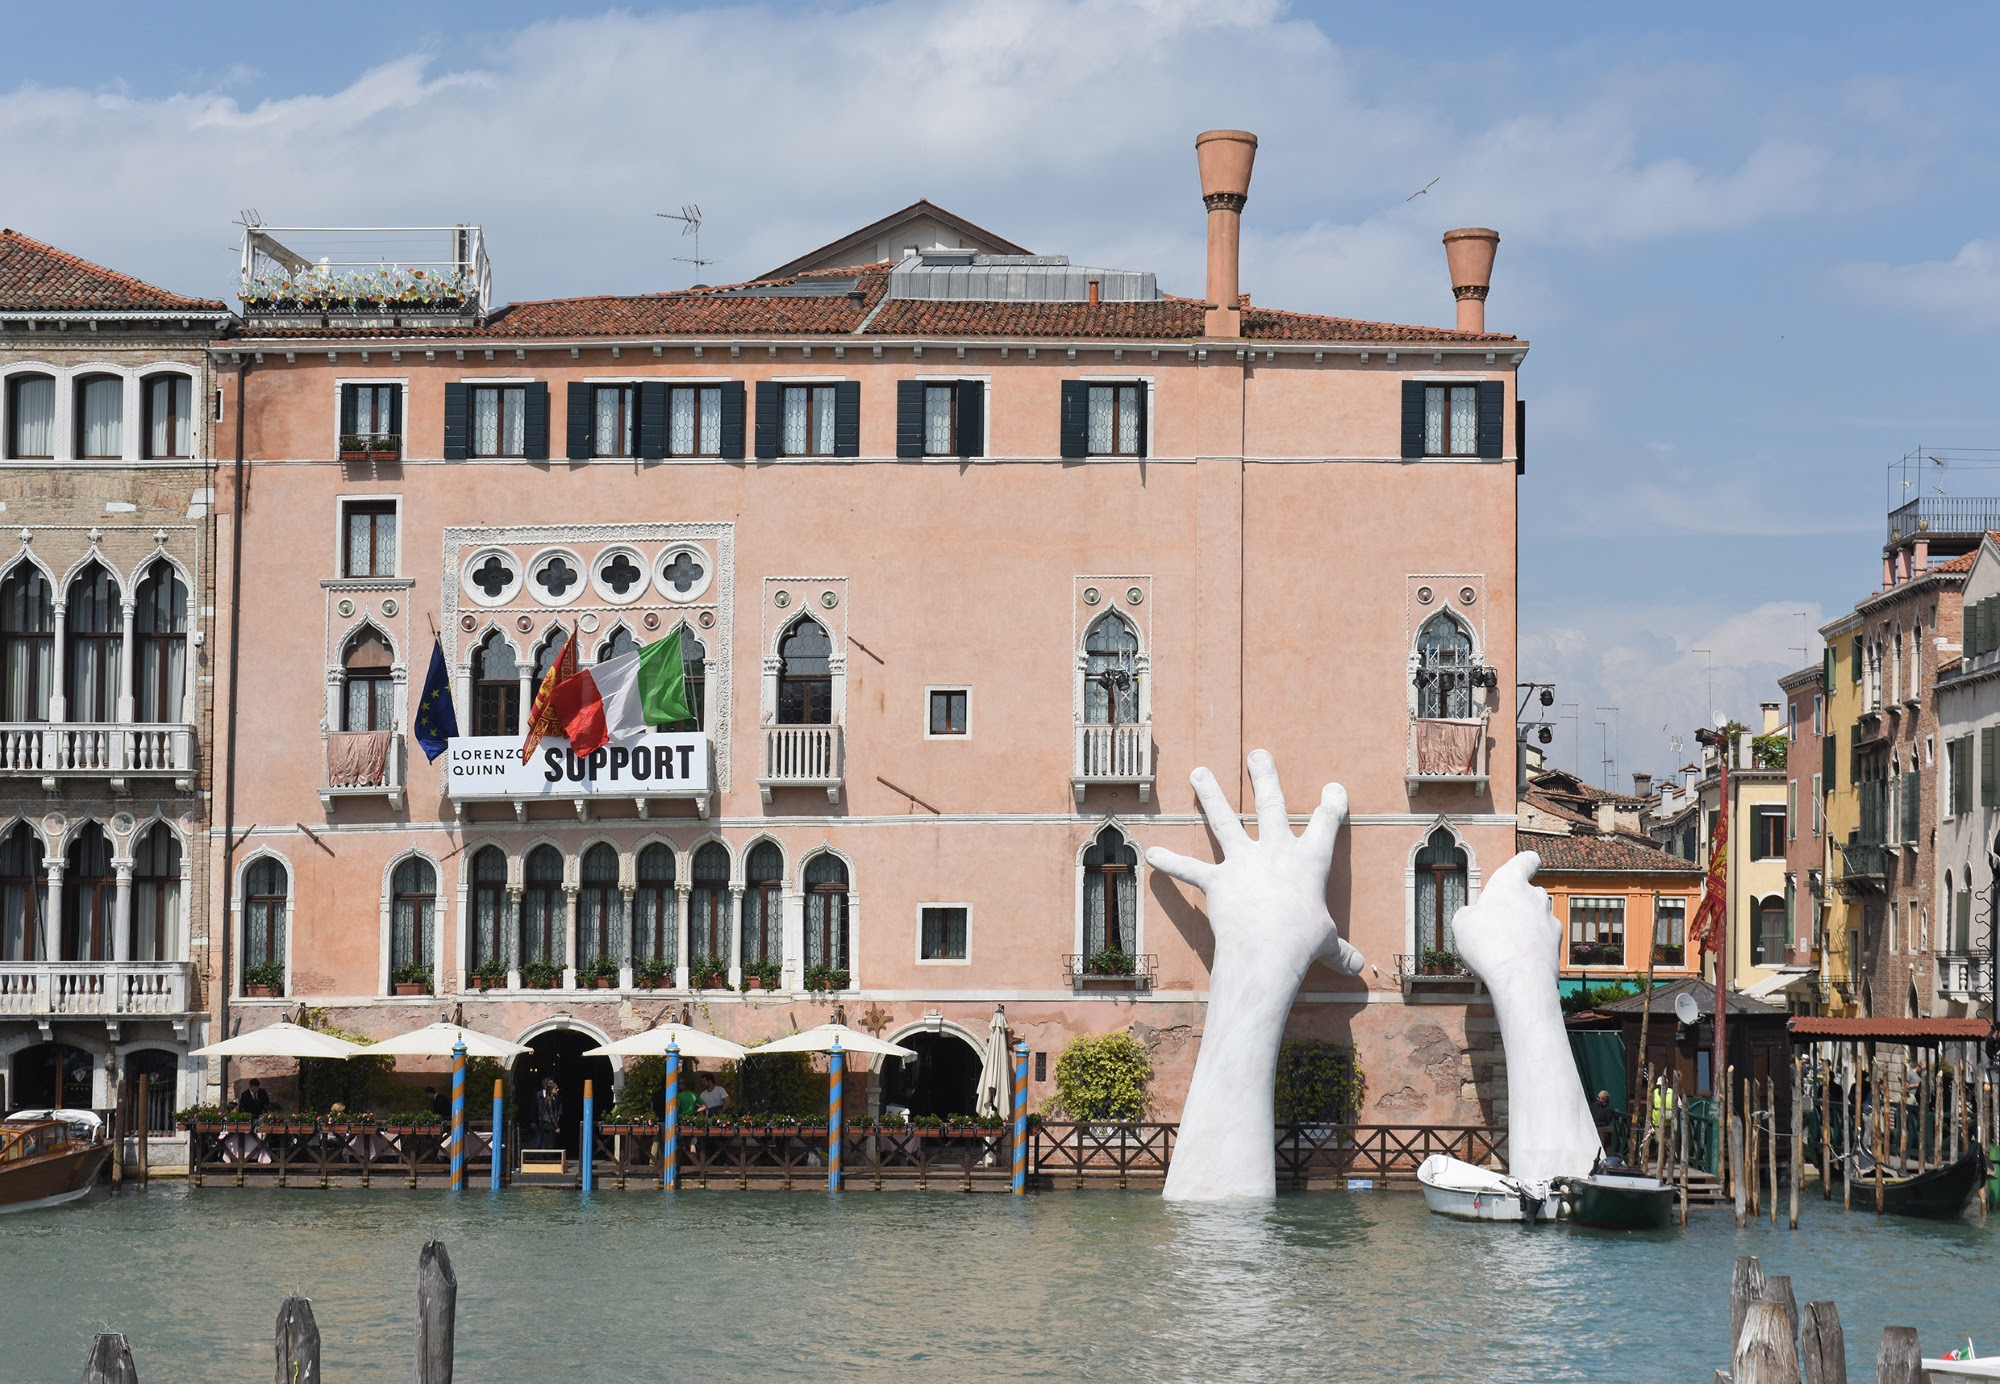 Lorenzo quinn 39 s new sculpture unveiled during venice for Architecture venise